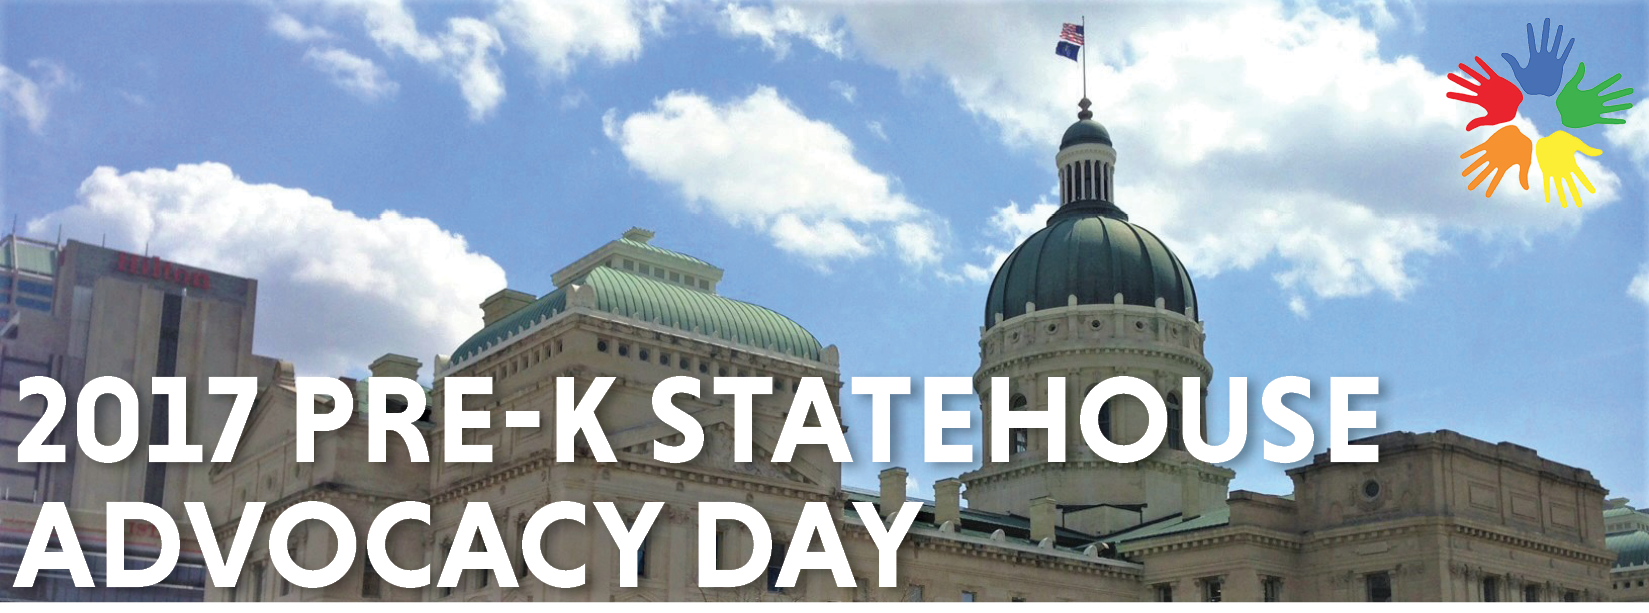 Branded_Statehouse.png